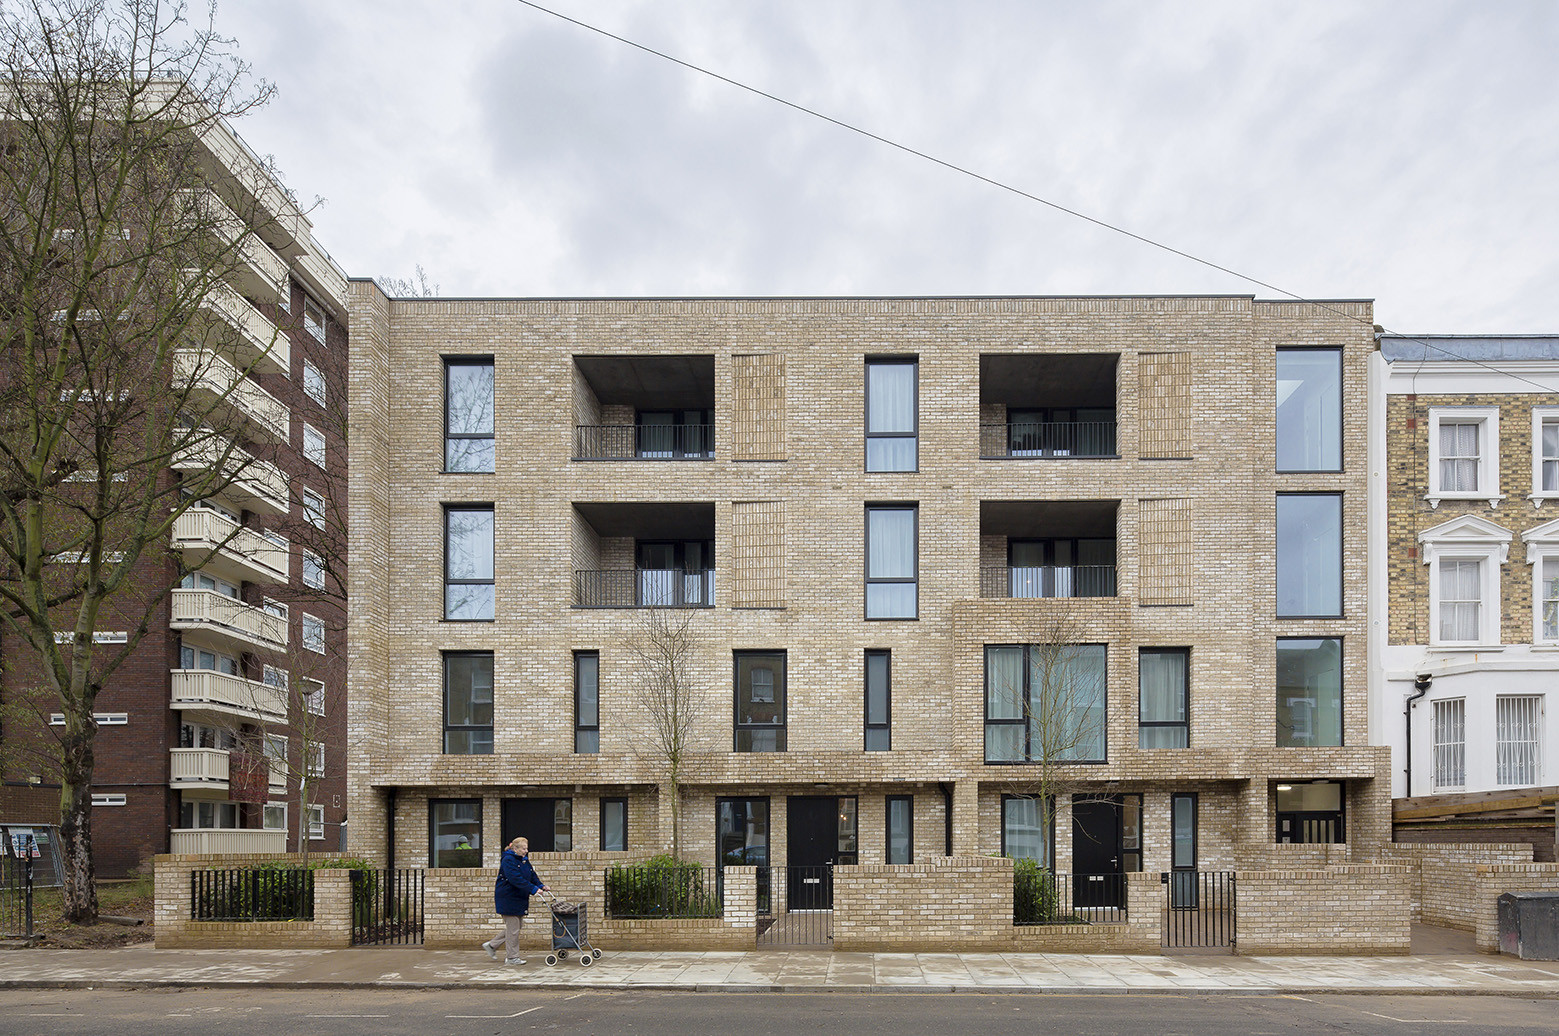 Inventive Council Housing / Levitt Bernstein, © Tim Crocker